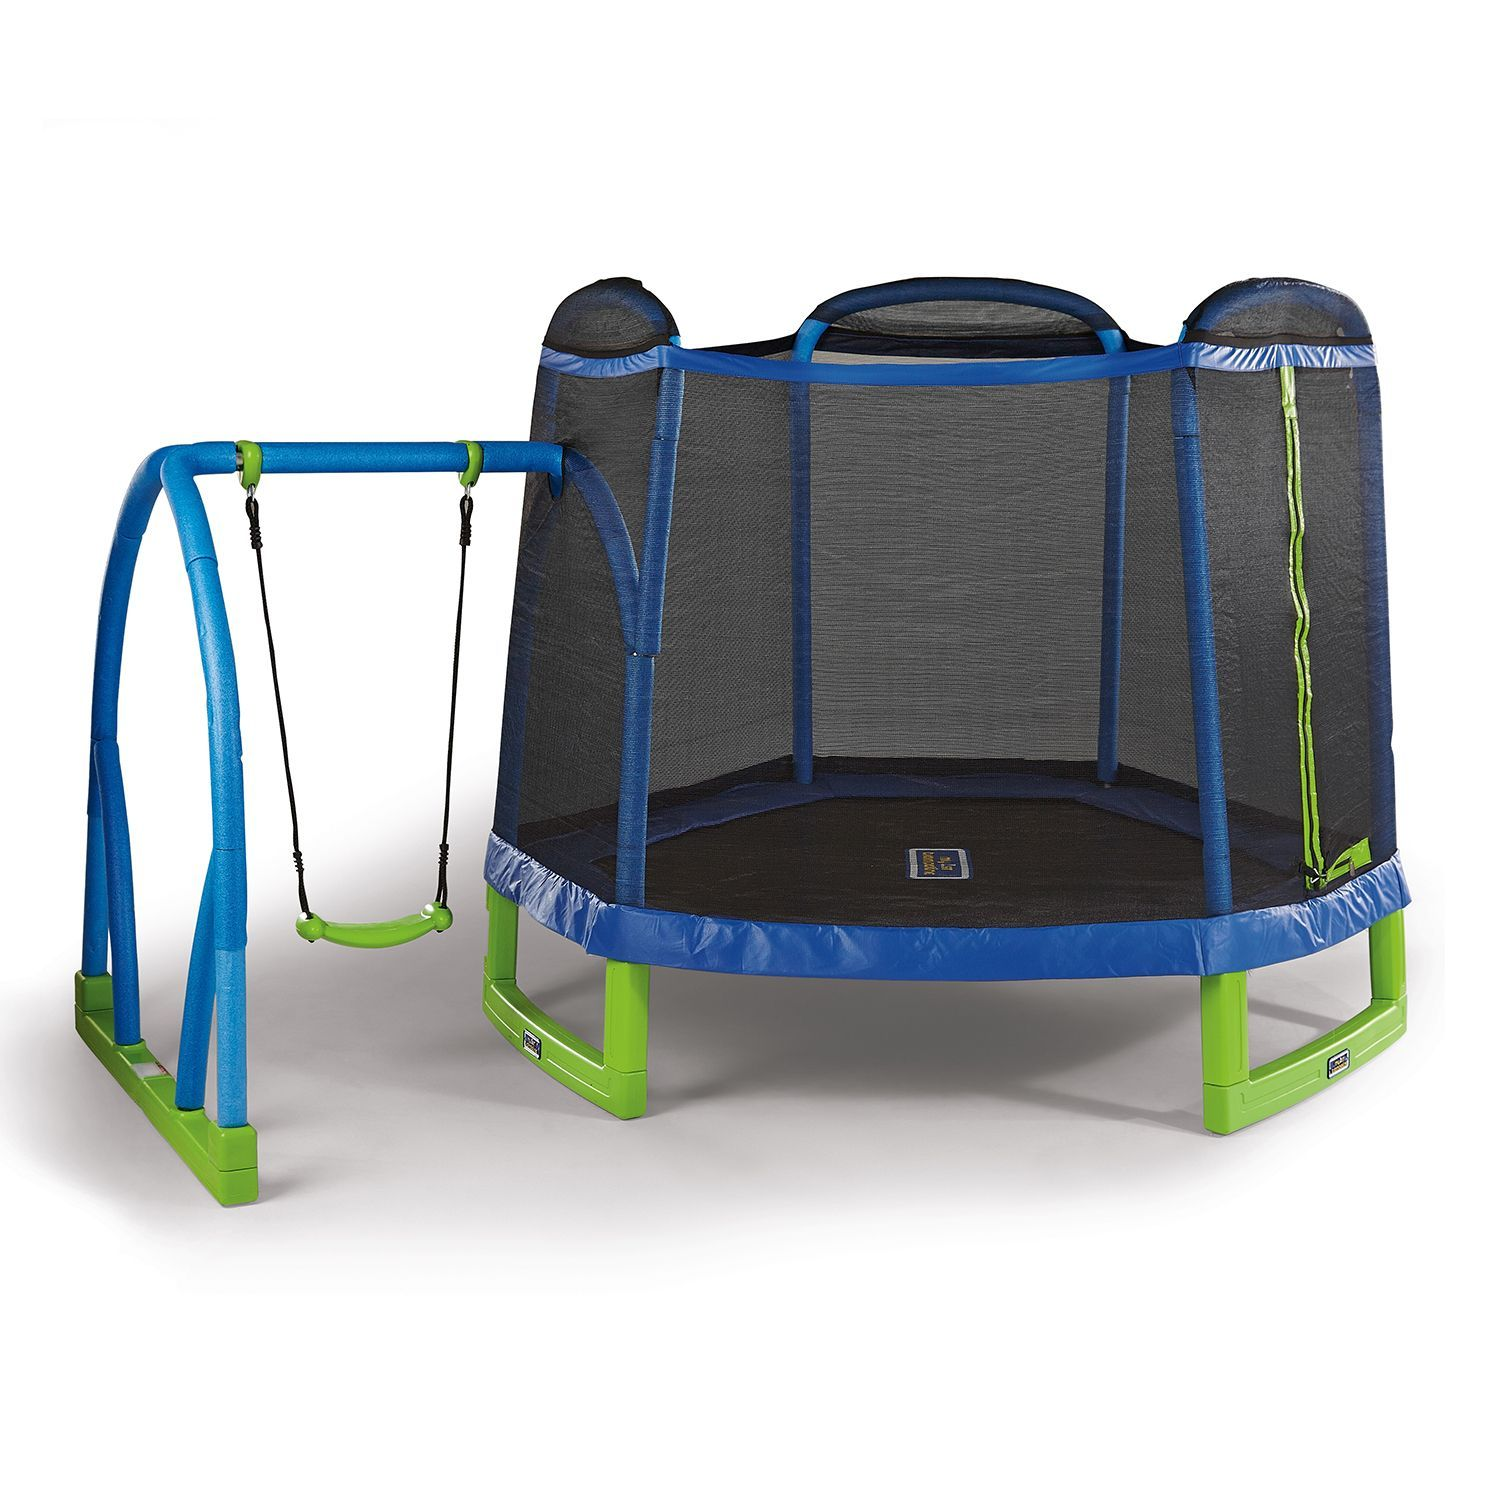 My First Jump 'N Swing Sam's Club Toddler trampoline